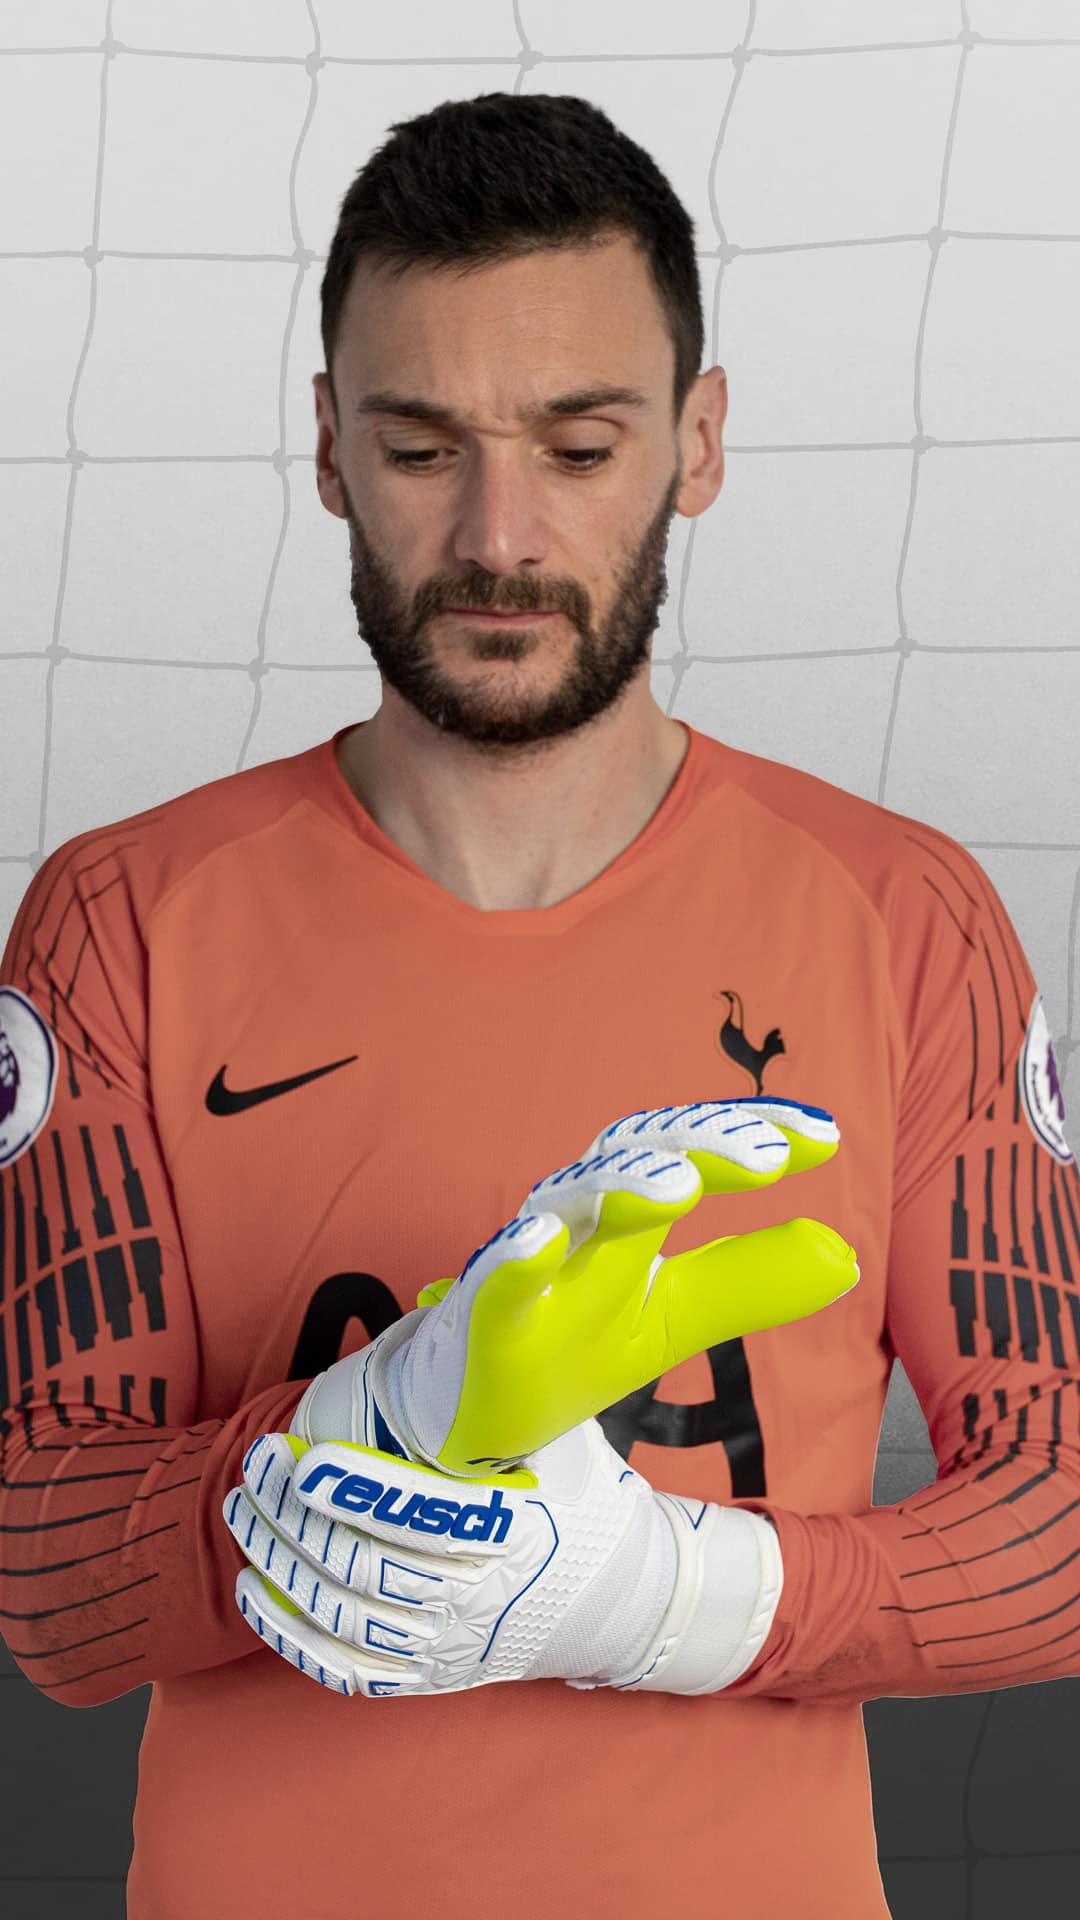 collection-gants-reusch-be-the-one-8